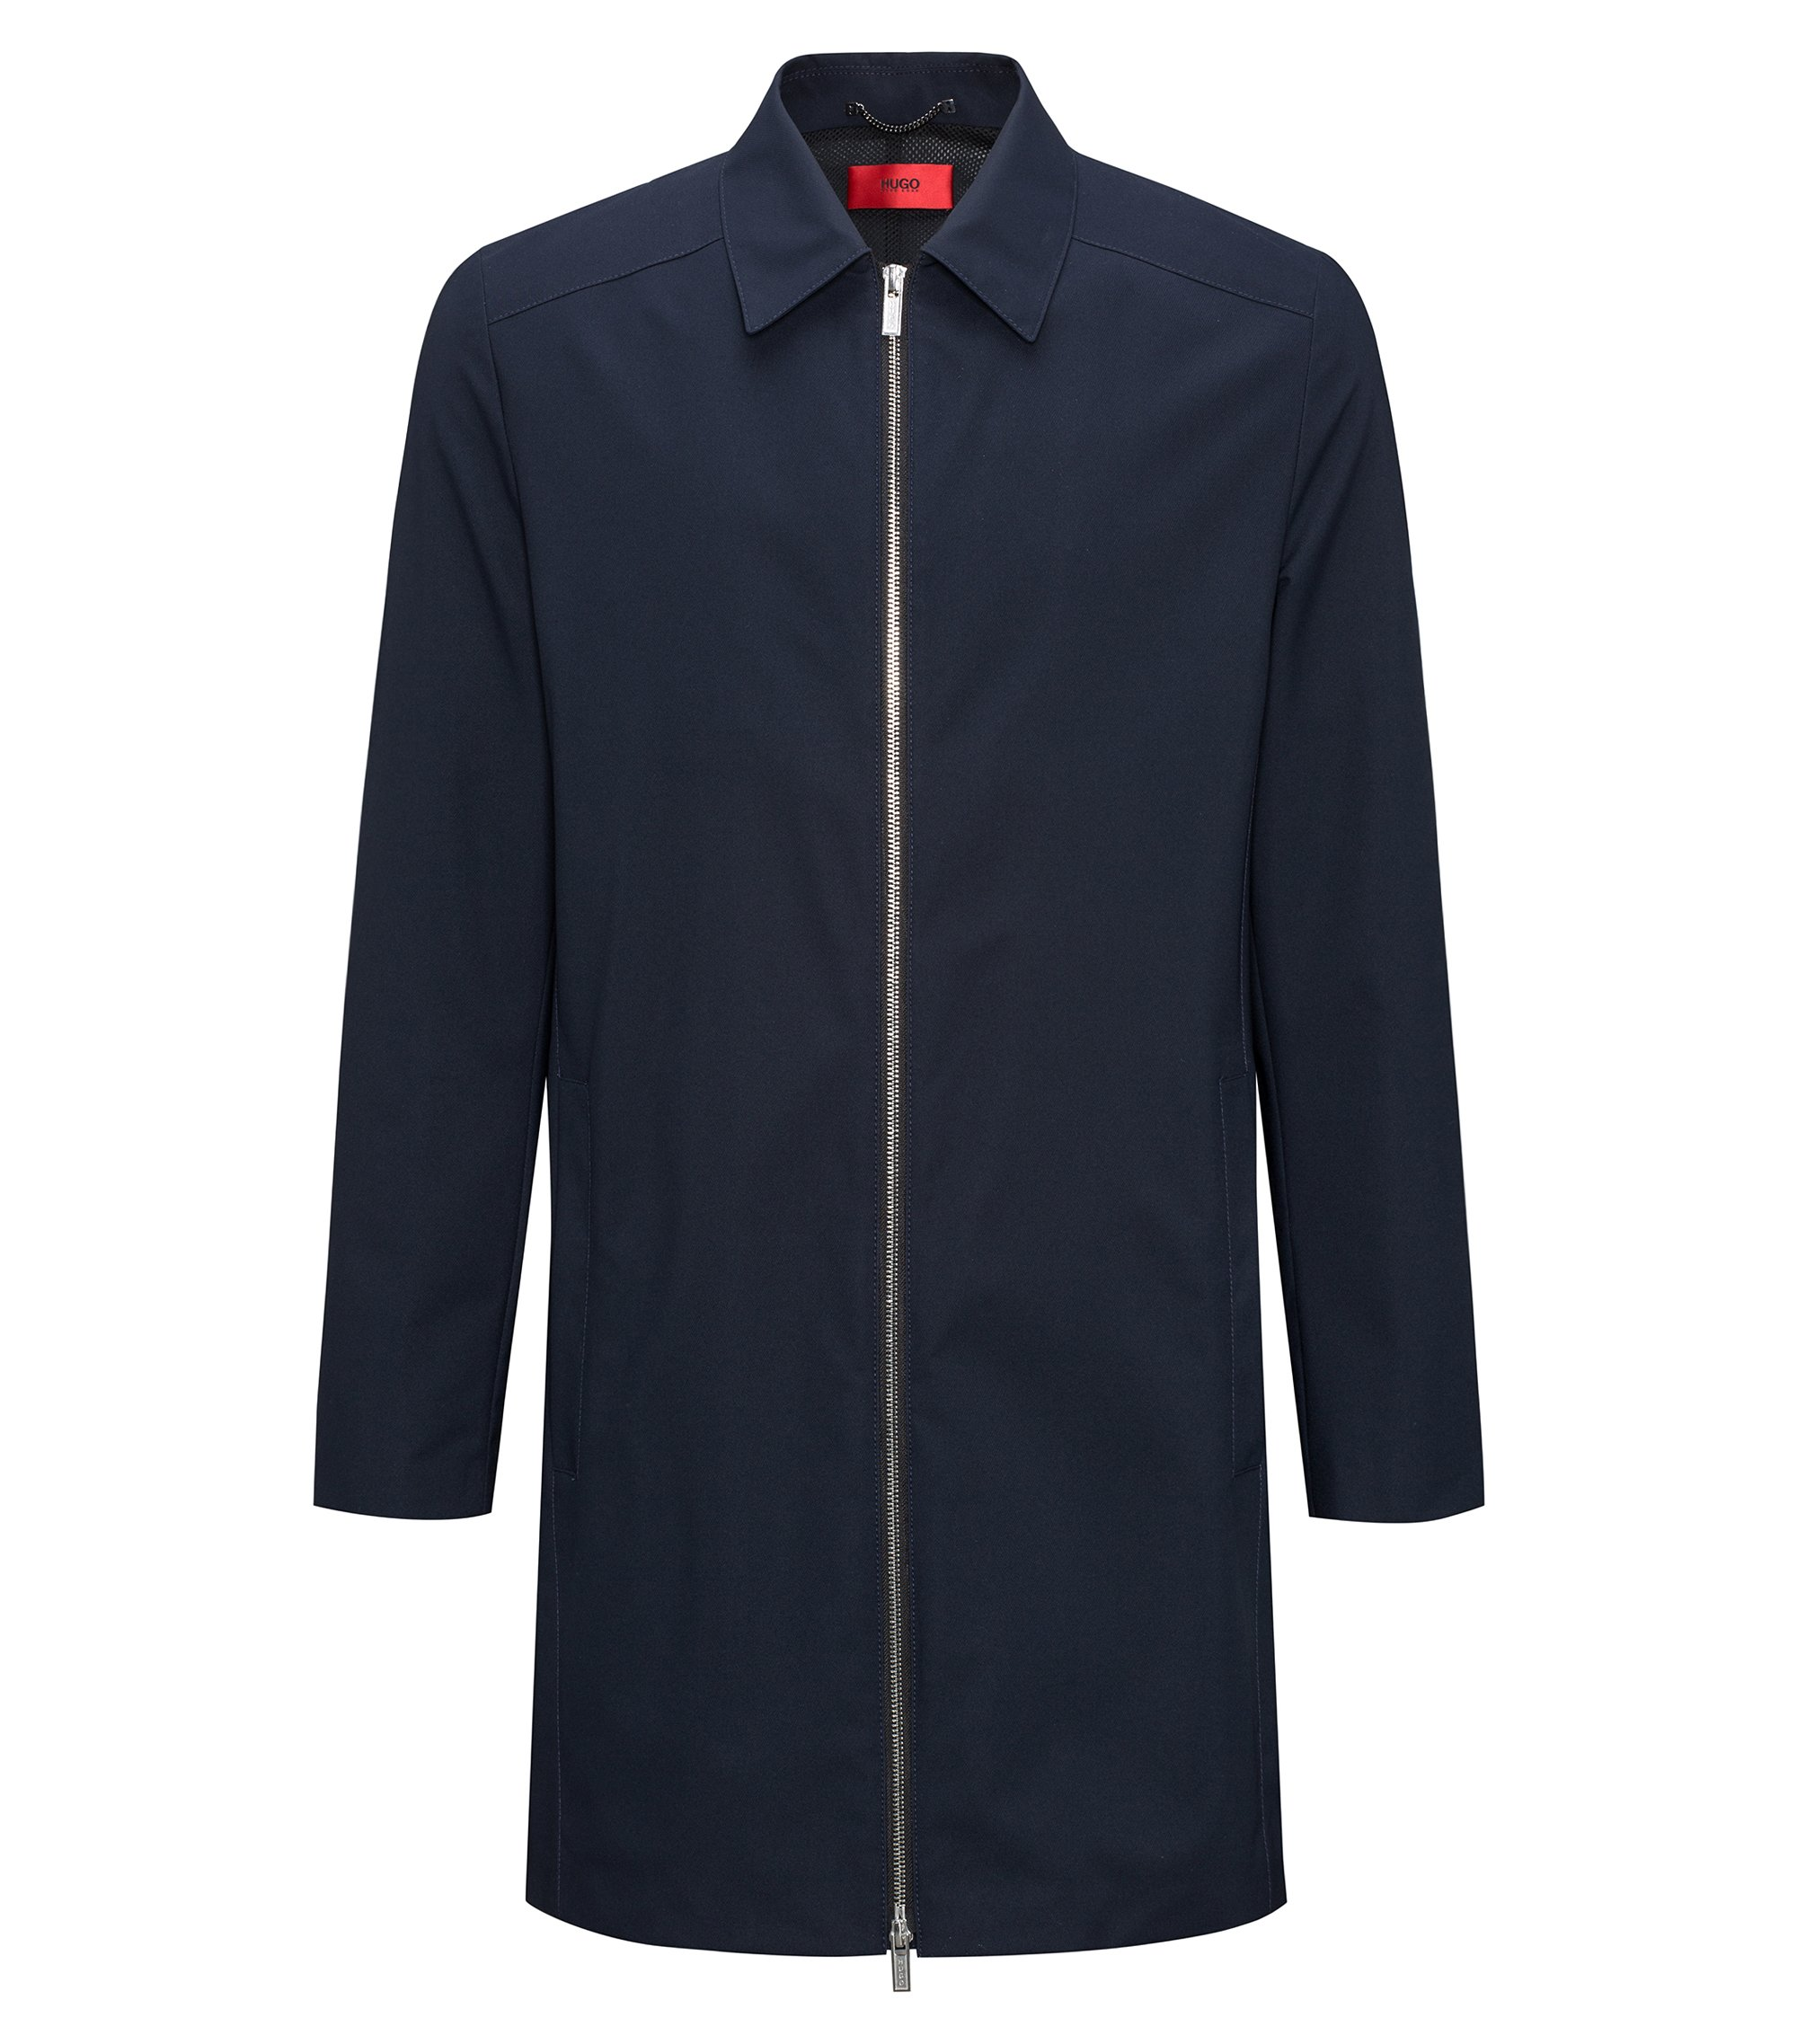 Cappotto slim fit idrorepellente con colletto a punta, Blu scuro